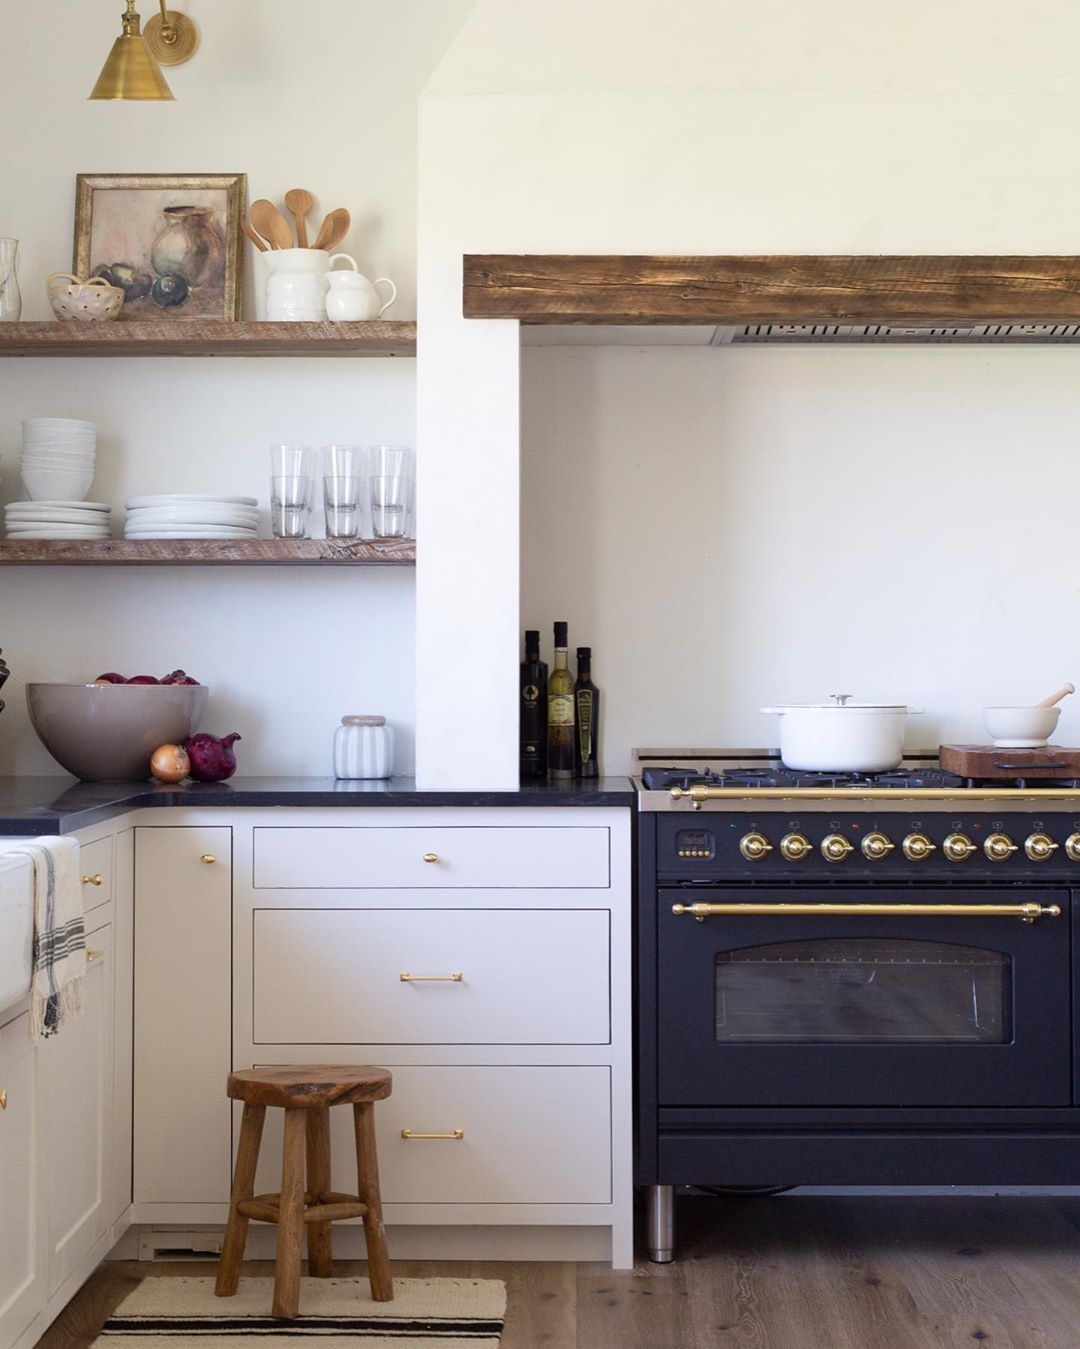 When You Are Bombarded With Pretty Interiors On Social Media I Feel Like It S Hard Not To Love Everything White Kitchen Appliances Kitchen Style Home Kitchens